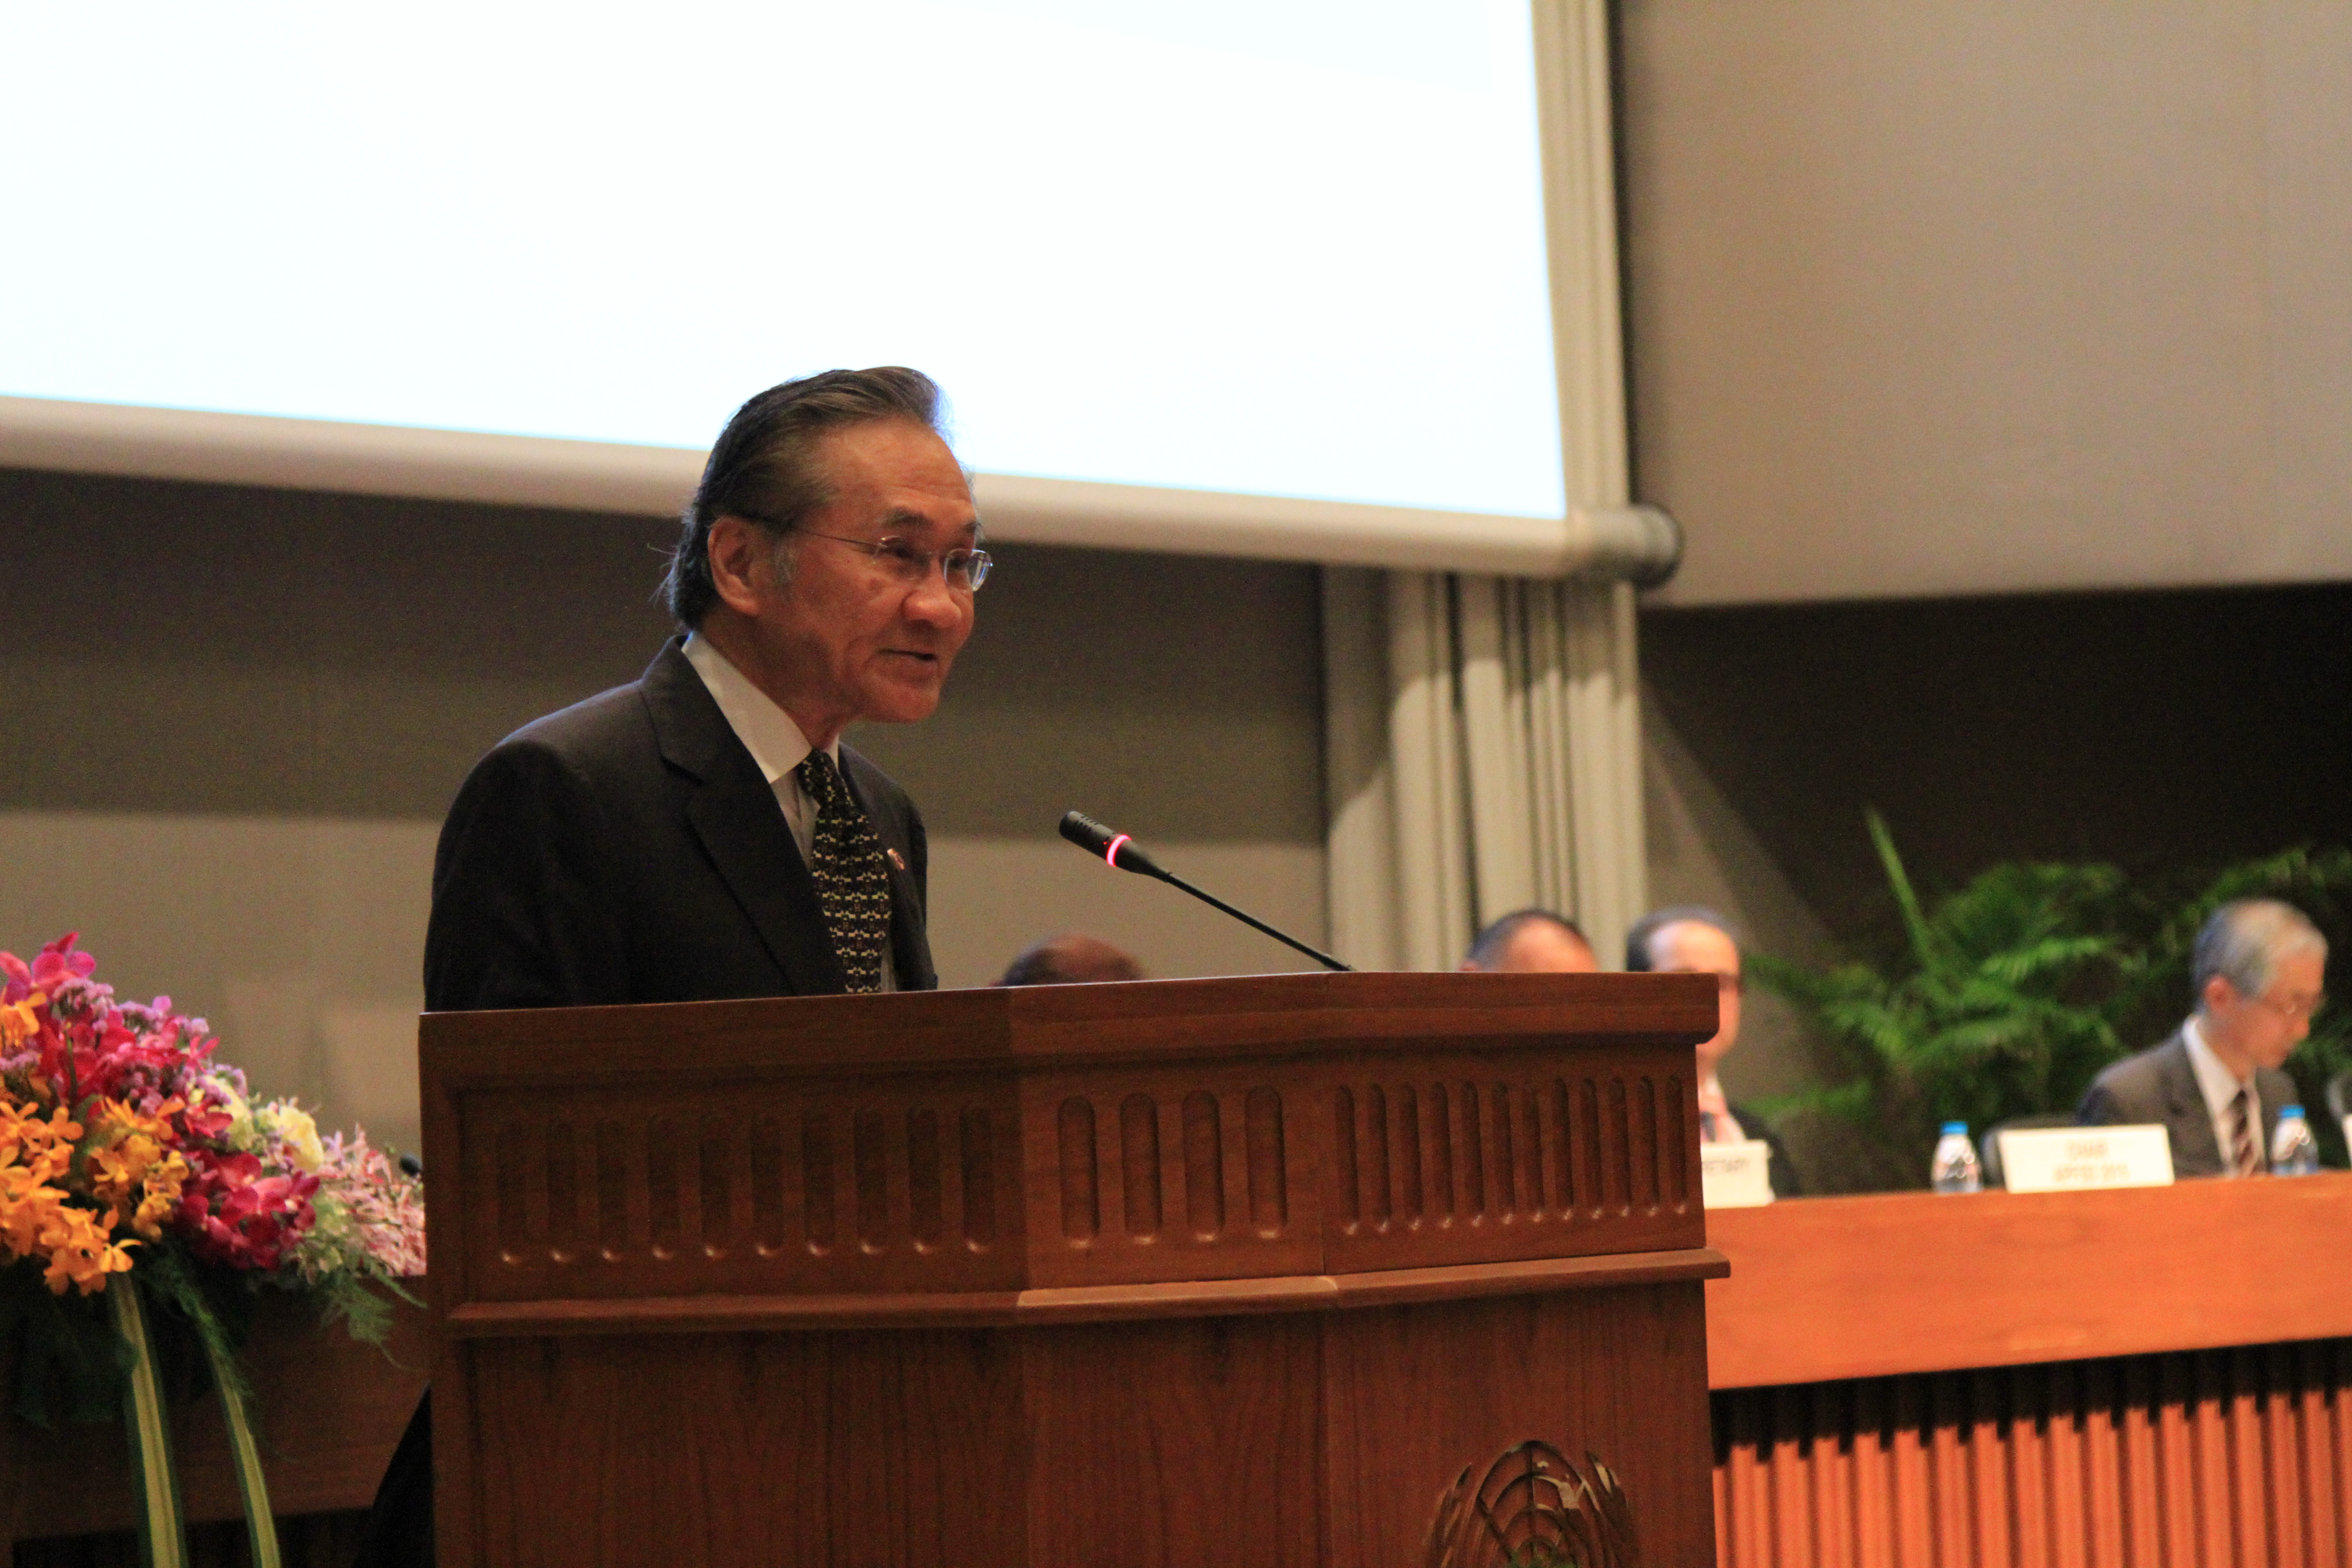 Foreign Minister of Thailand at APFSD 2016